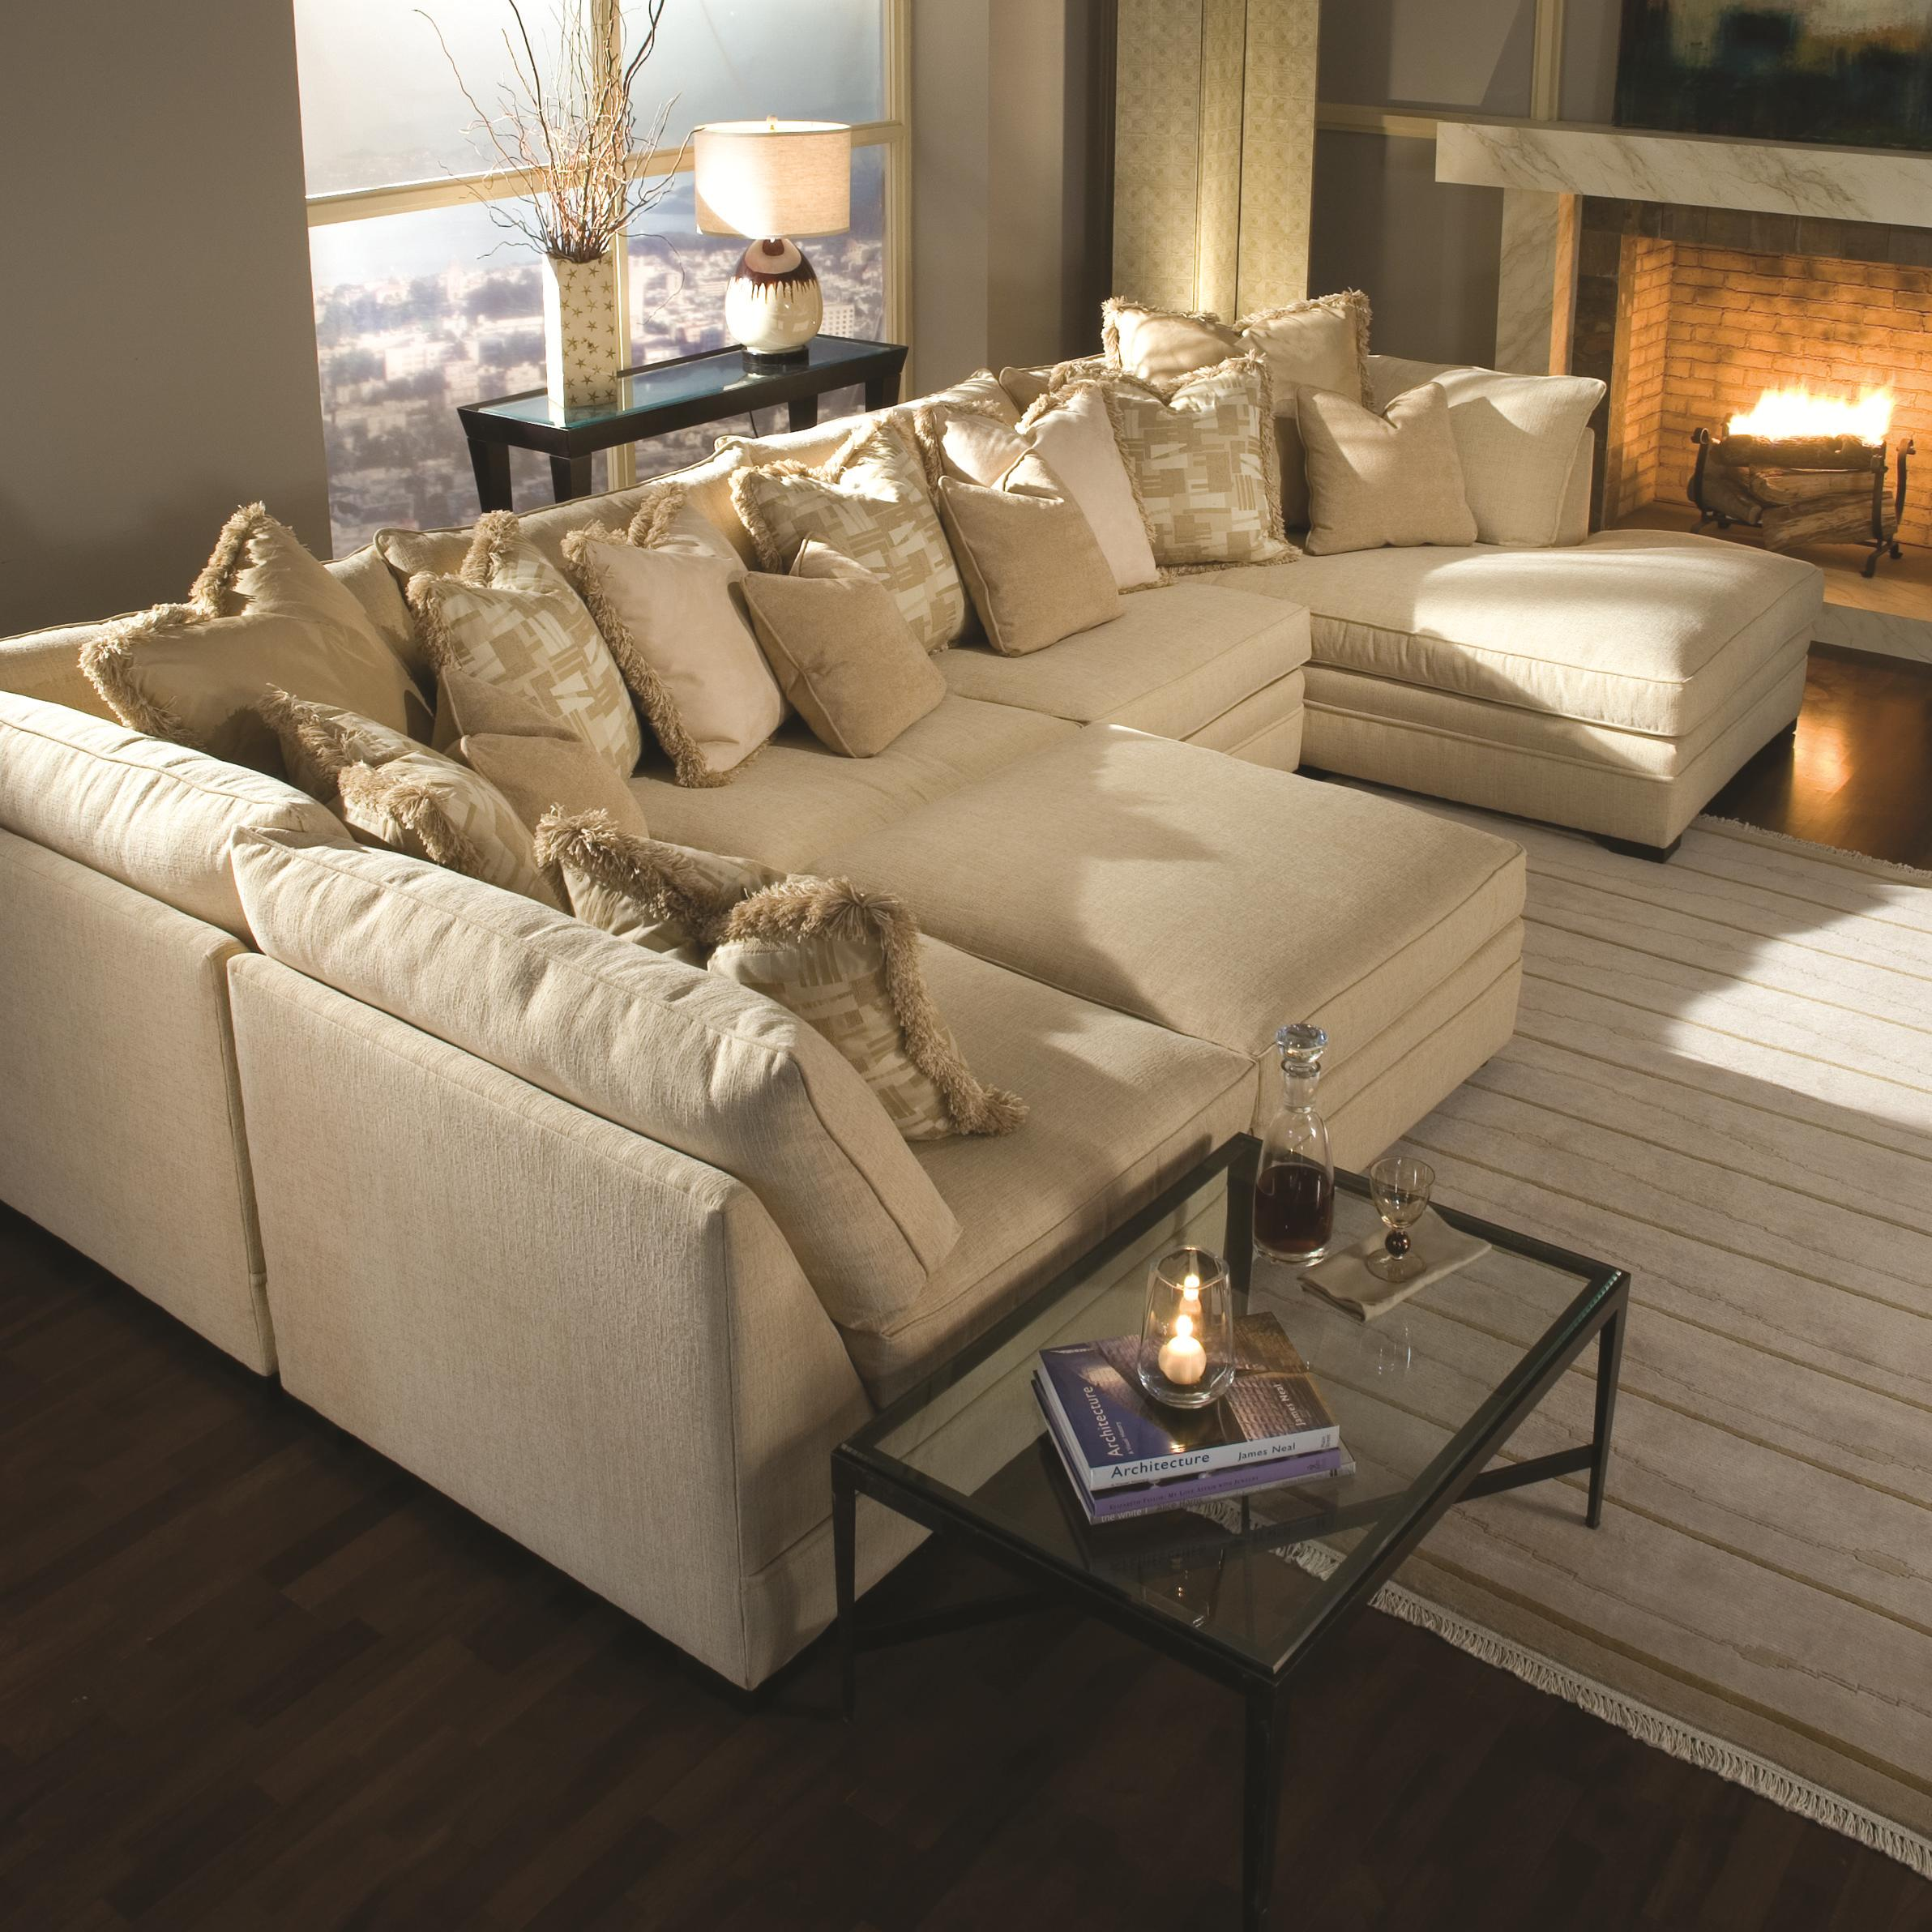 Large U Sectional Sofas: U Shaped Sectional With Chaise Design